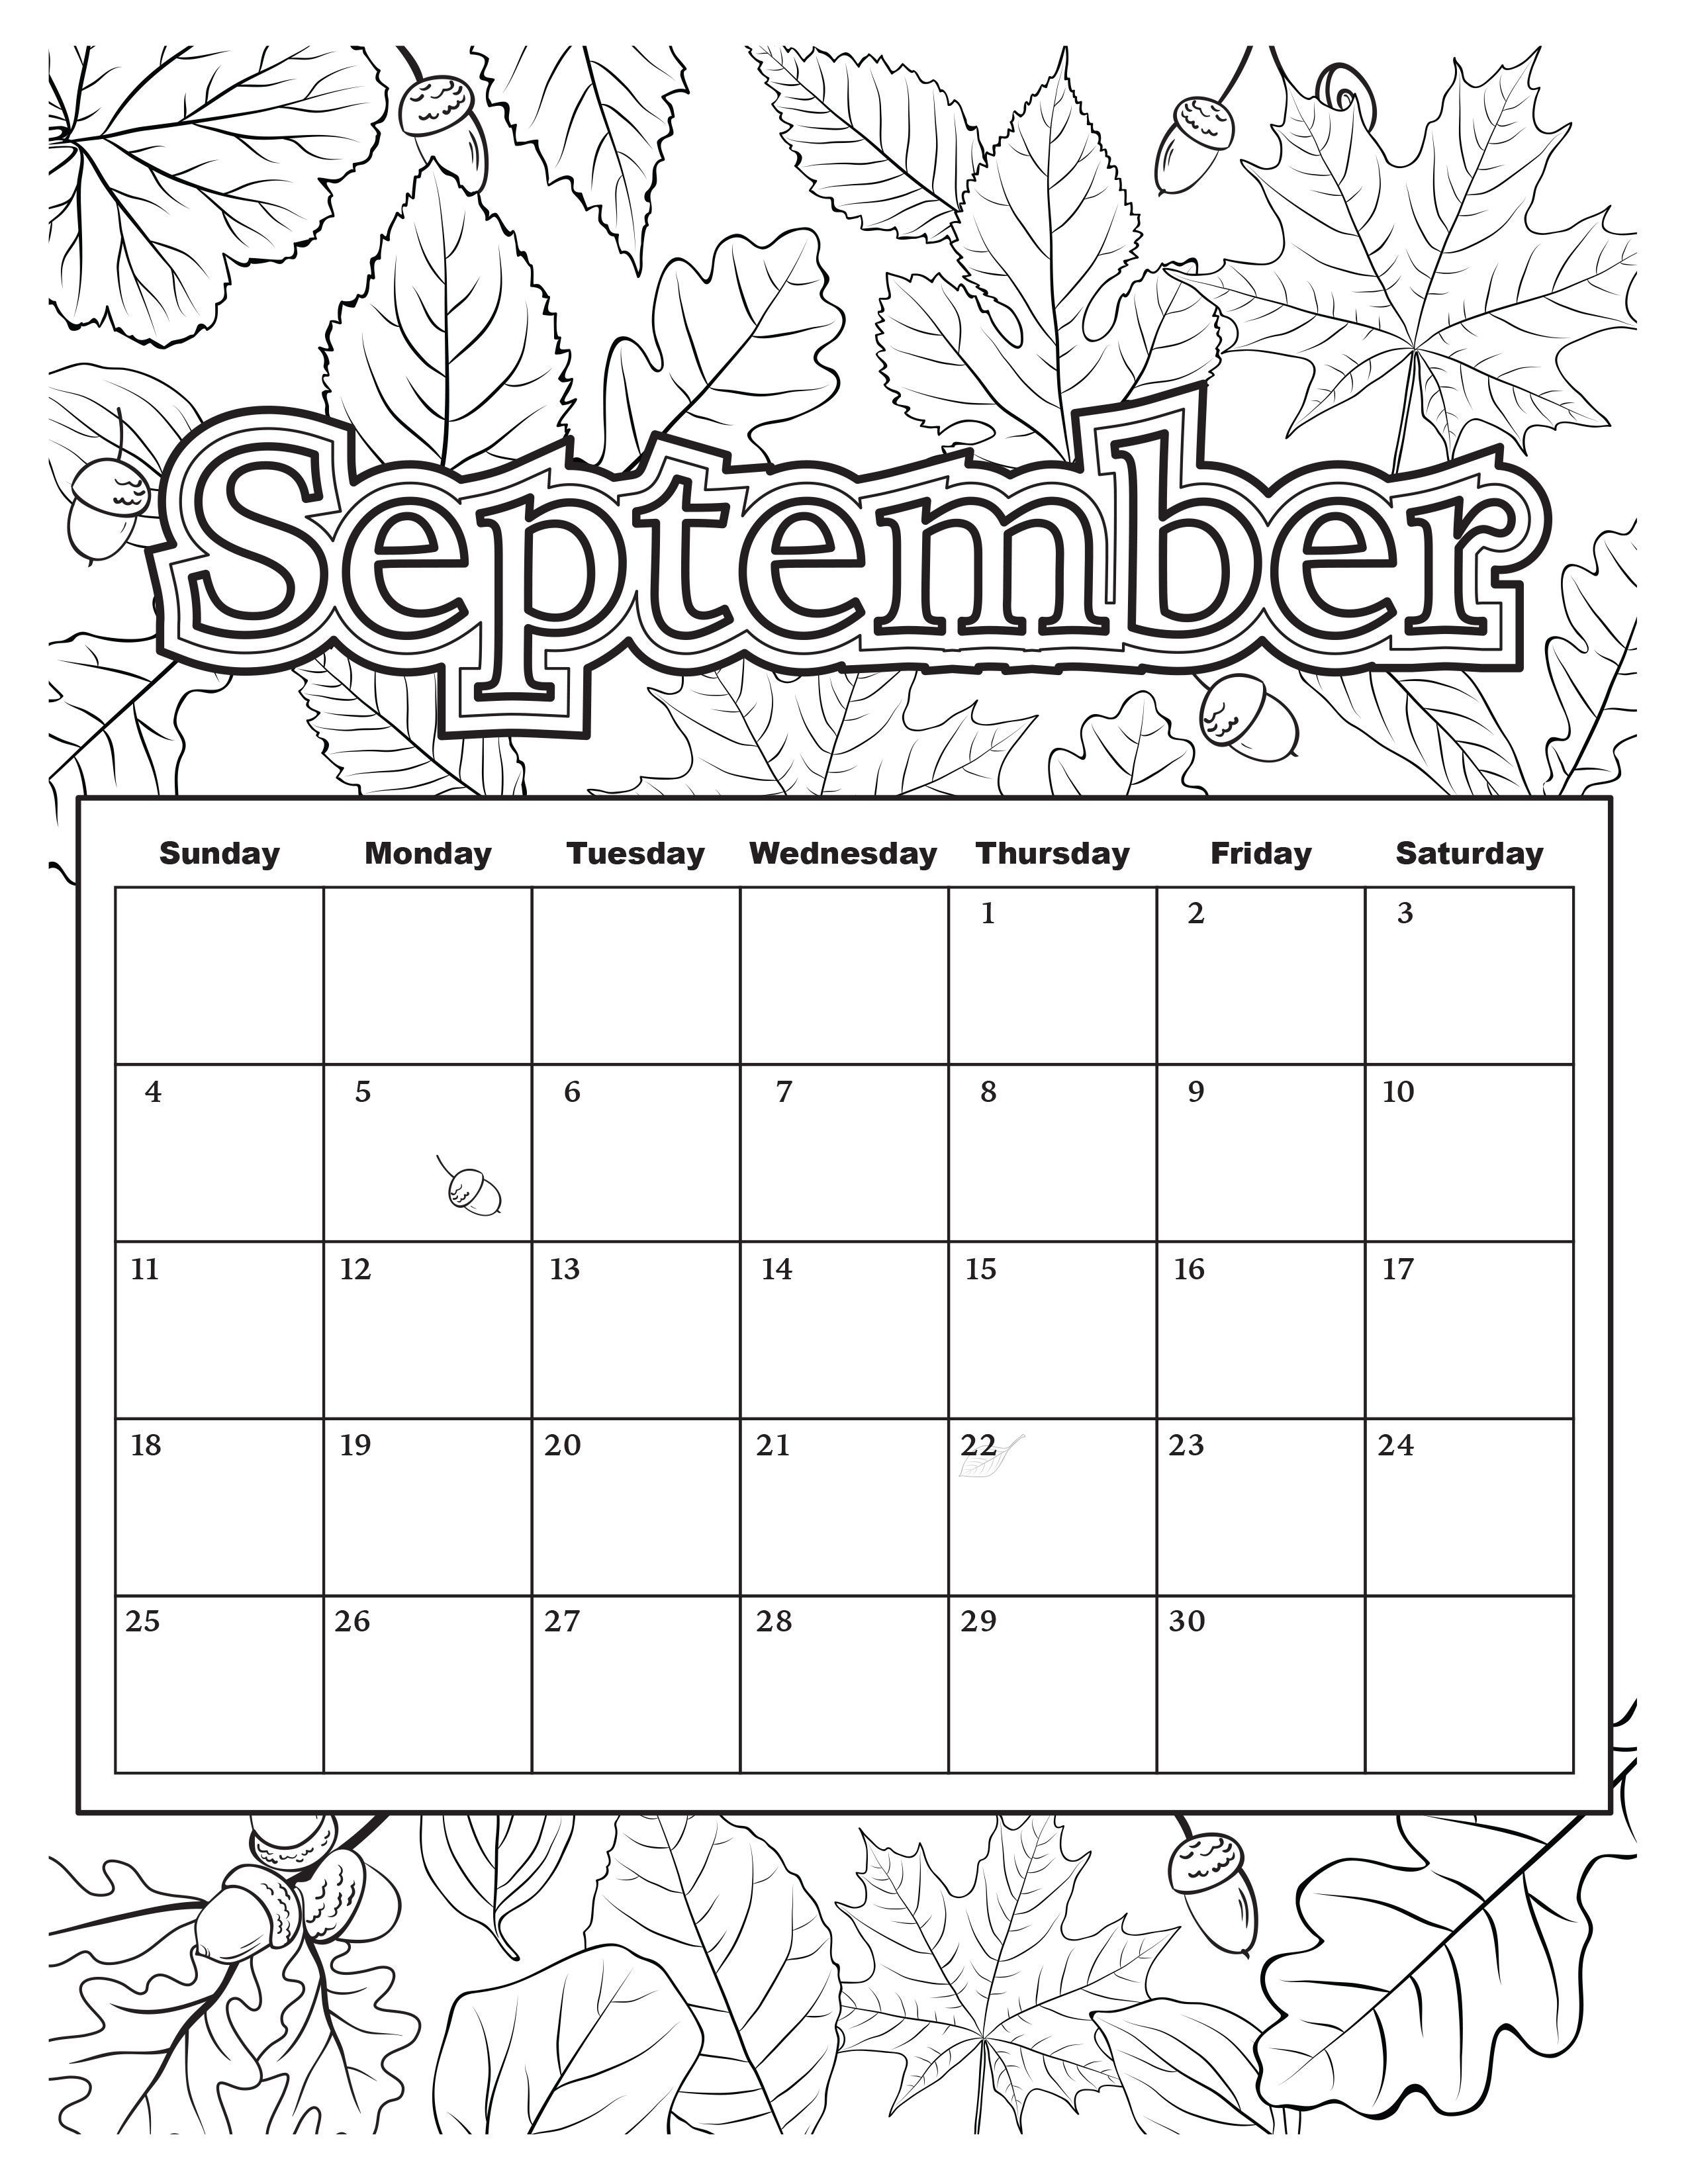 September Calendar In Word Excel Printable